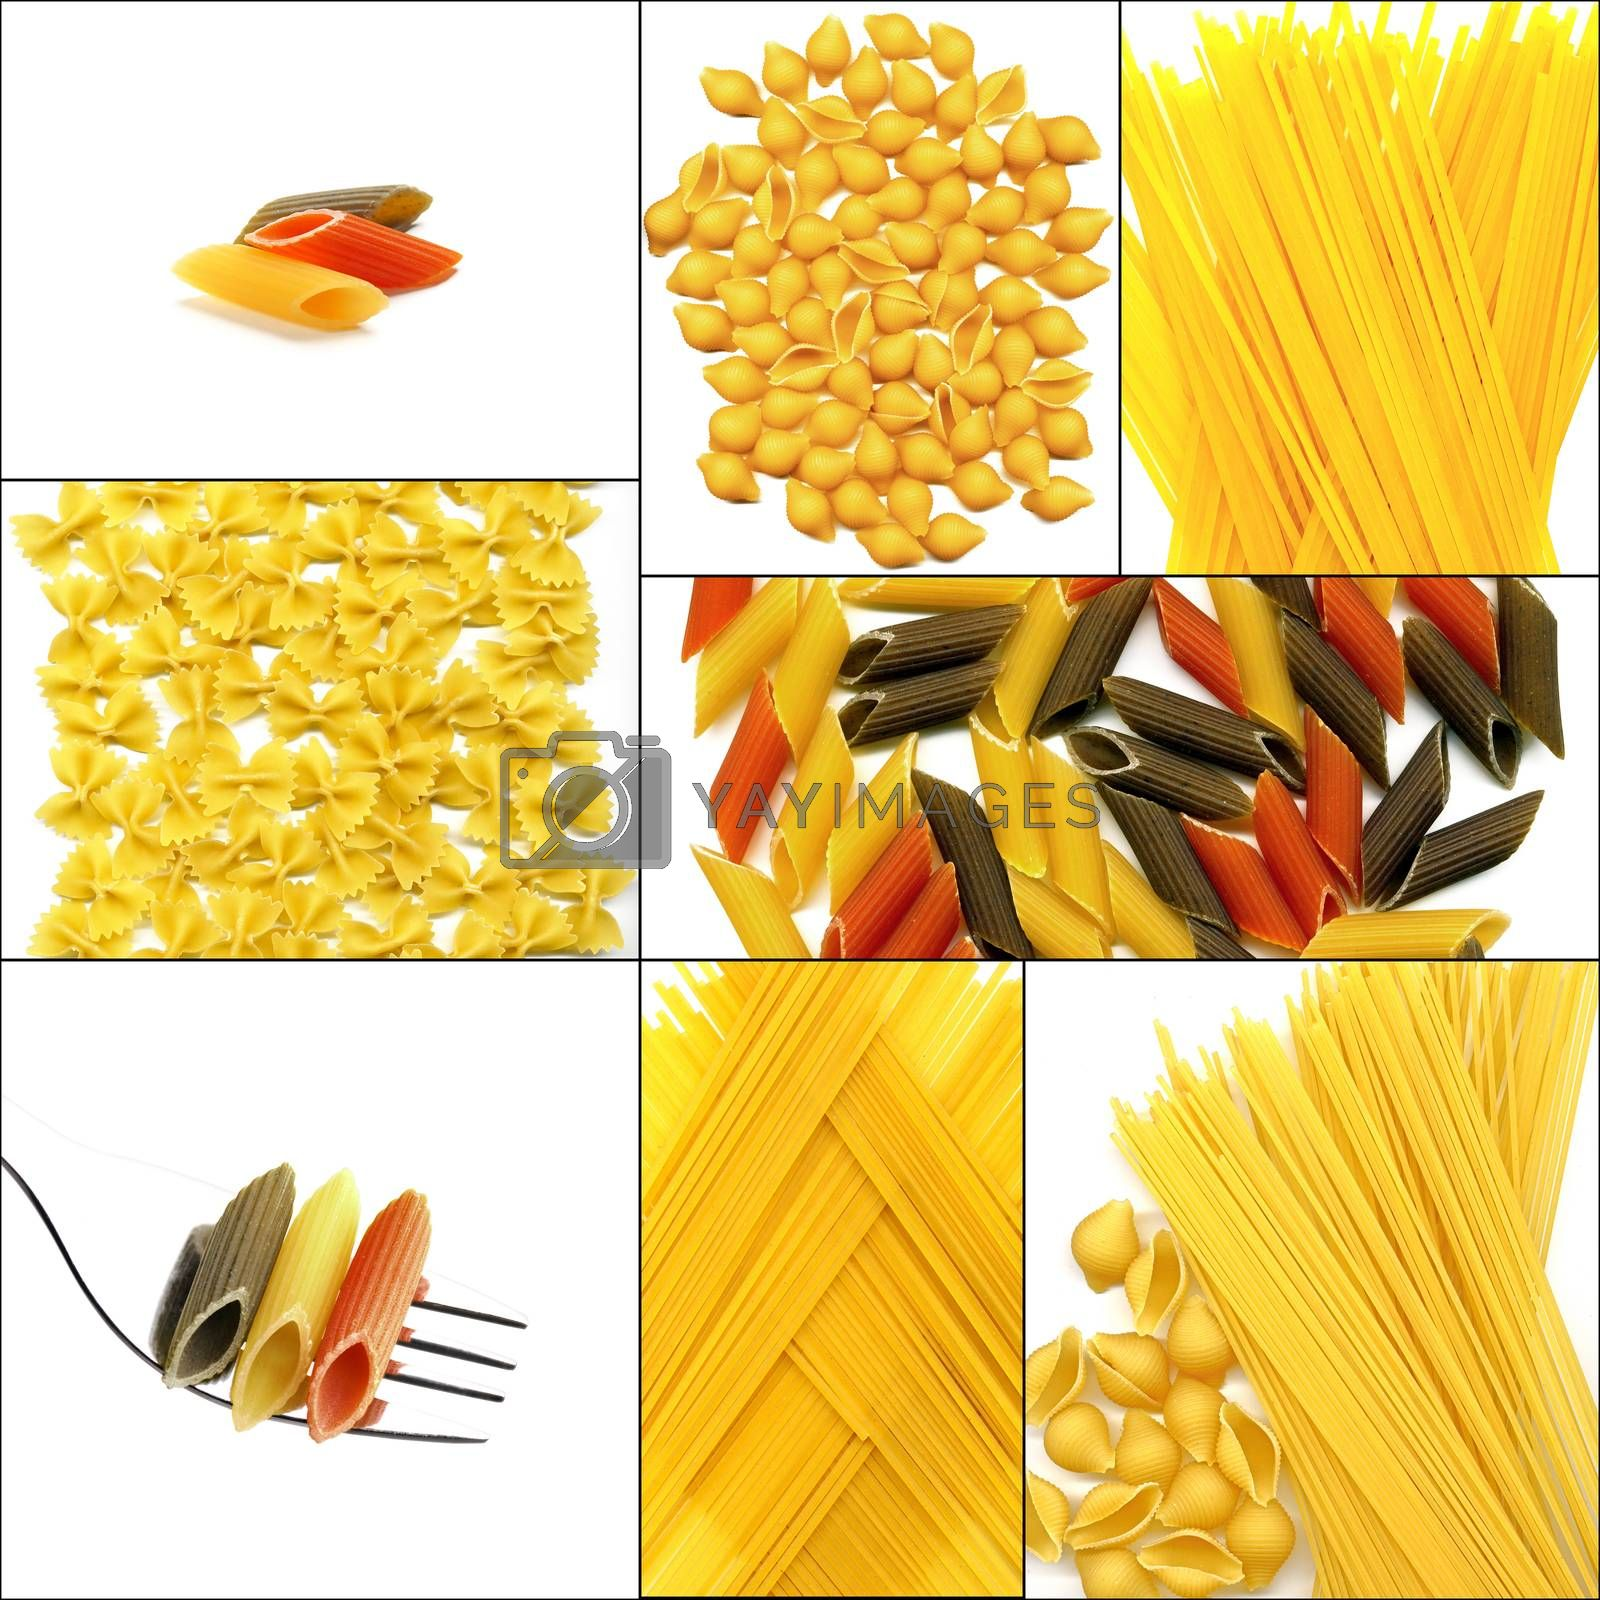 Royalty free image of various type of Italian pasta collage by keko64